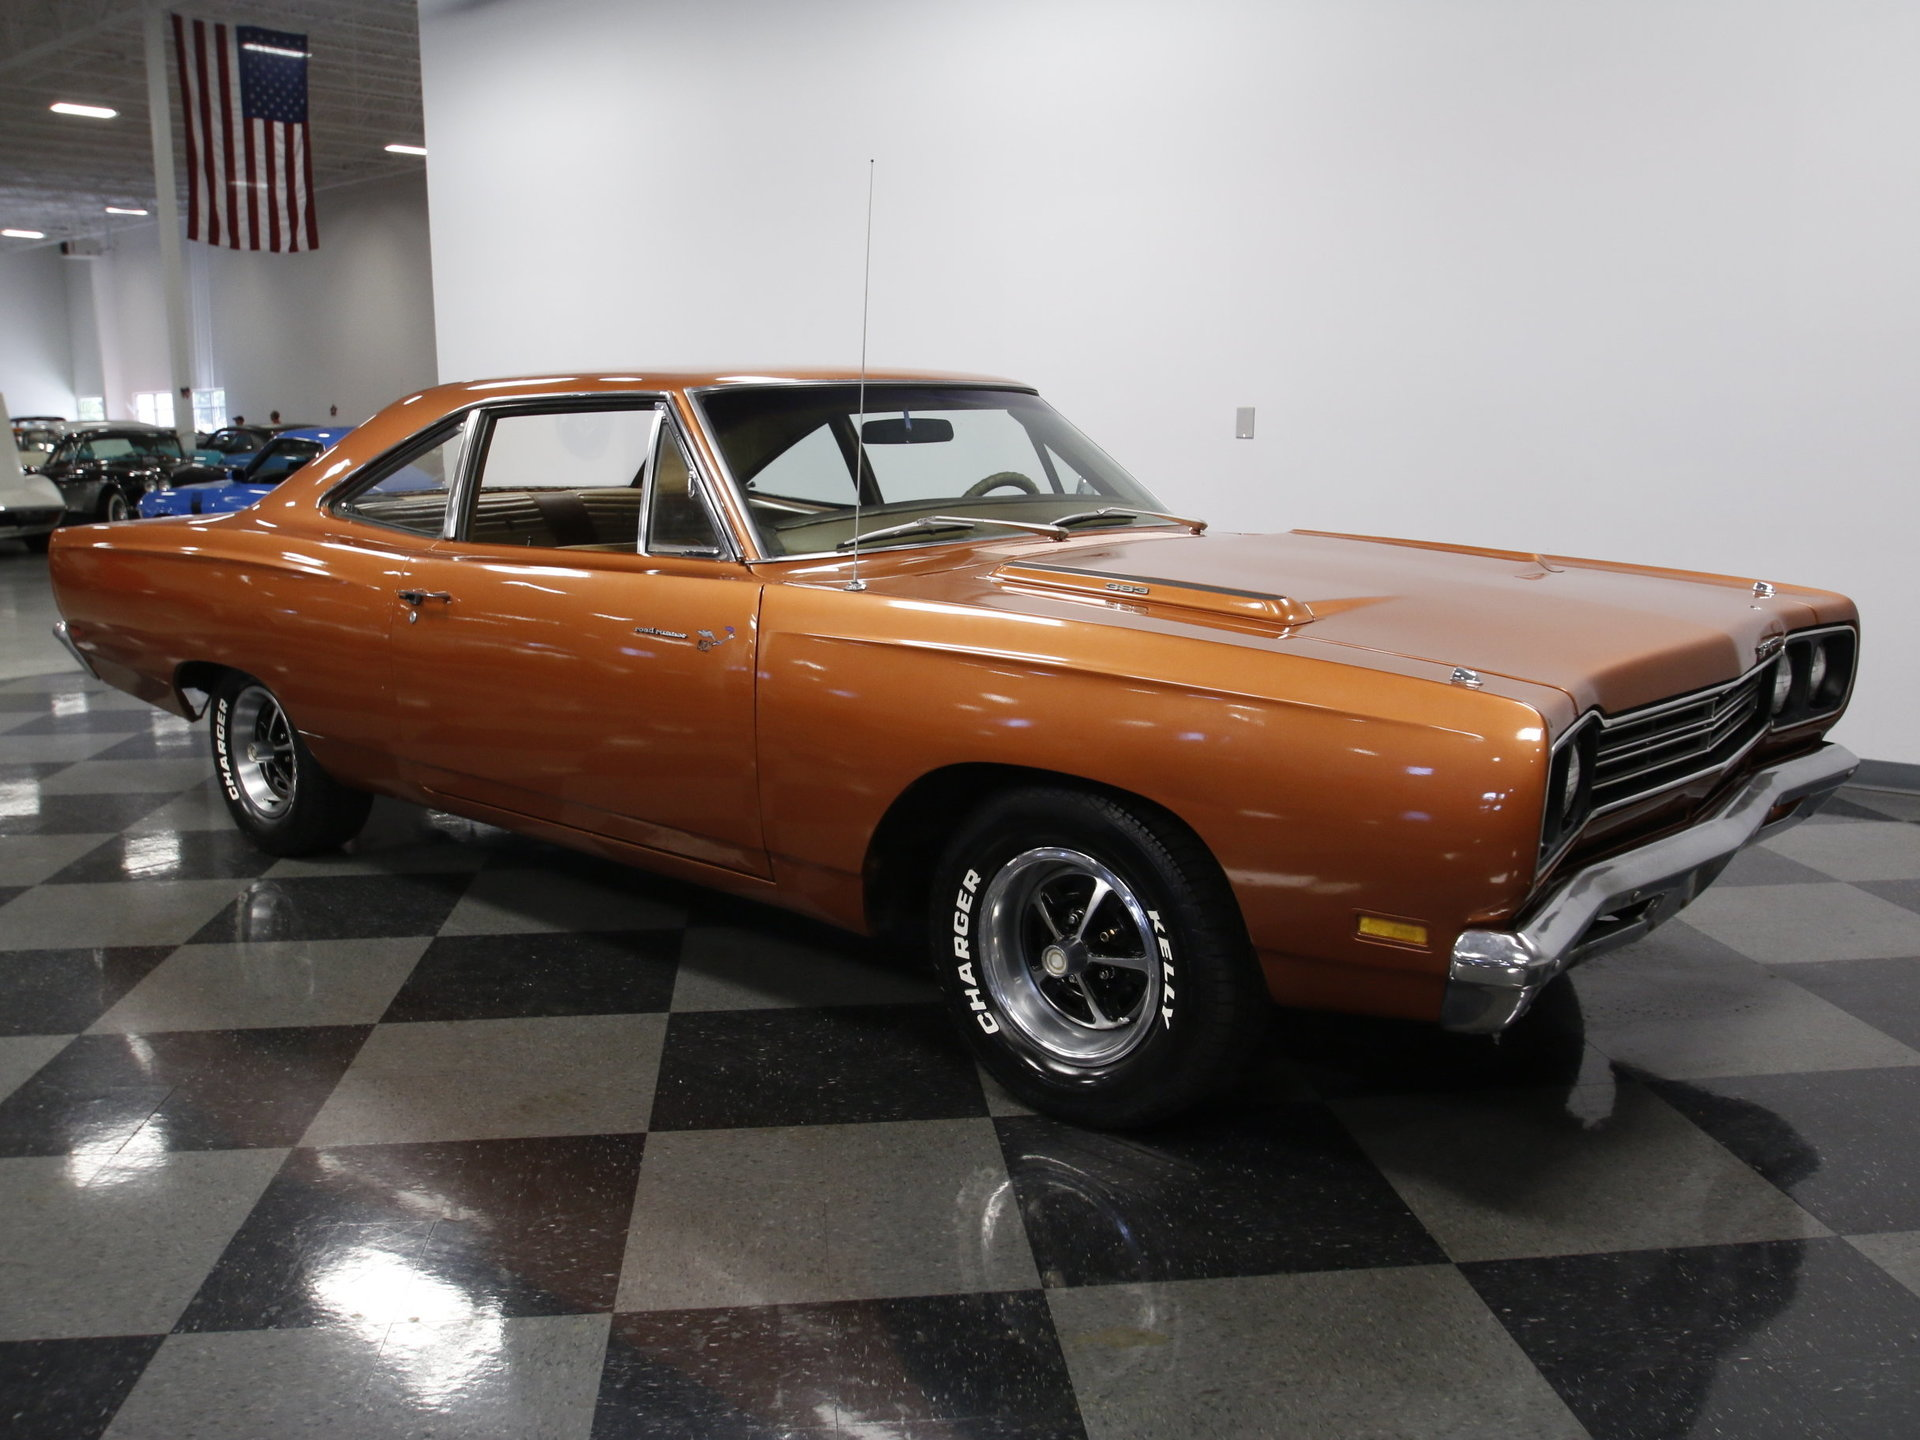 1969 Plymouth Road Runner Streetside Classics The Nations 69 Wiring Diagram Spincar View Play Video 360